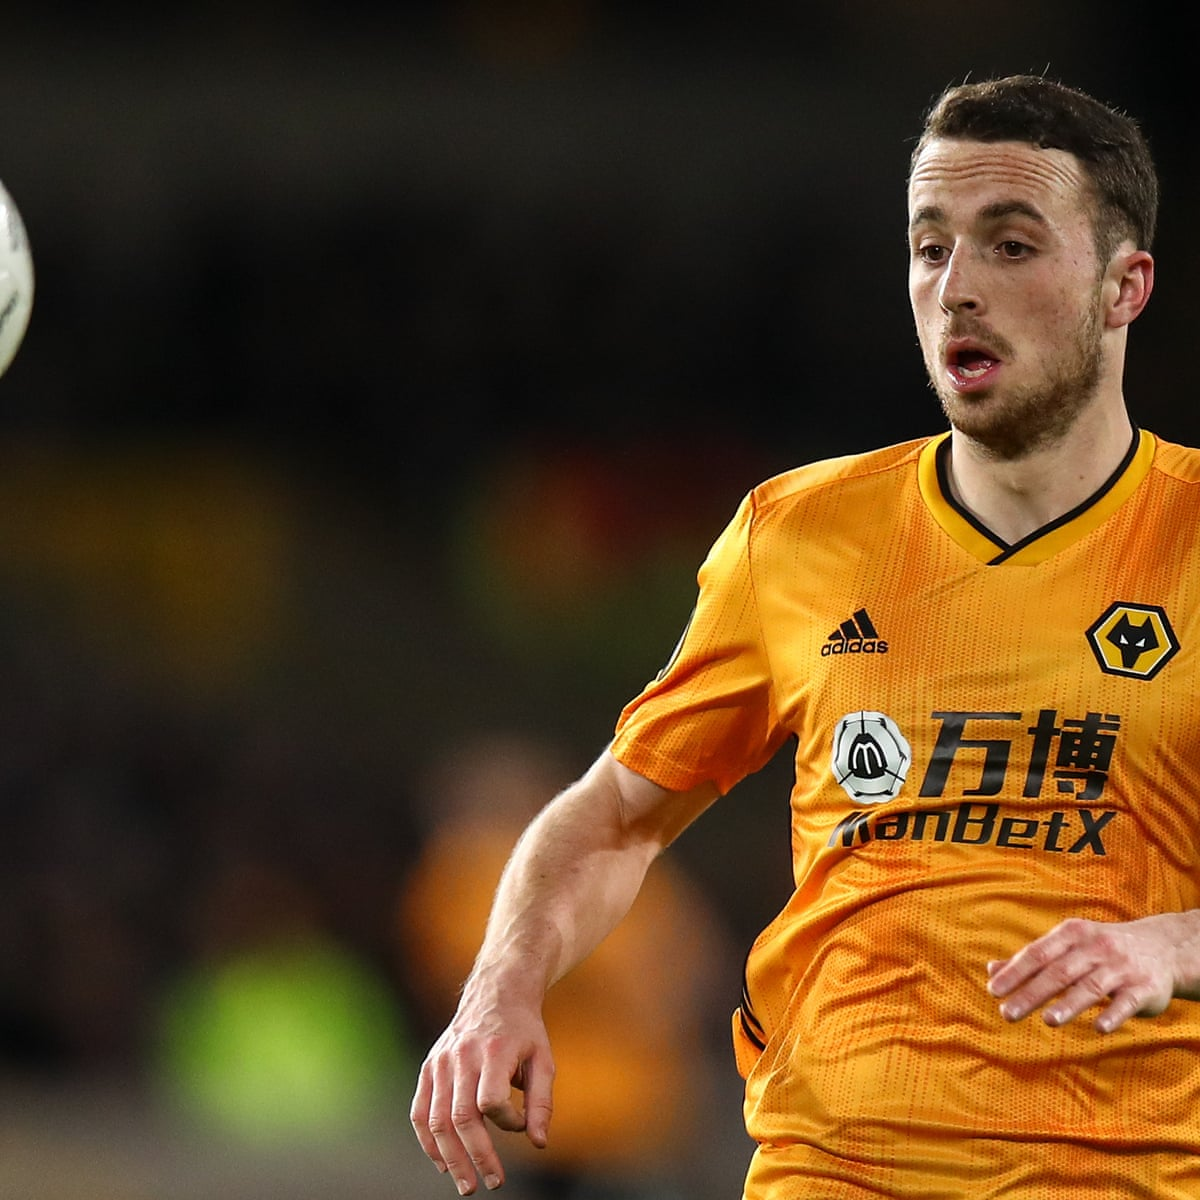 Wolves Diogo Jota I M Coaching Telford United On Football Manager Wolverhampton Wanderers The Guardian